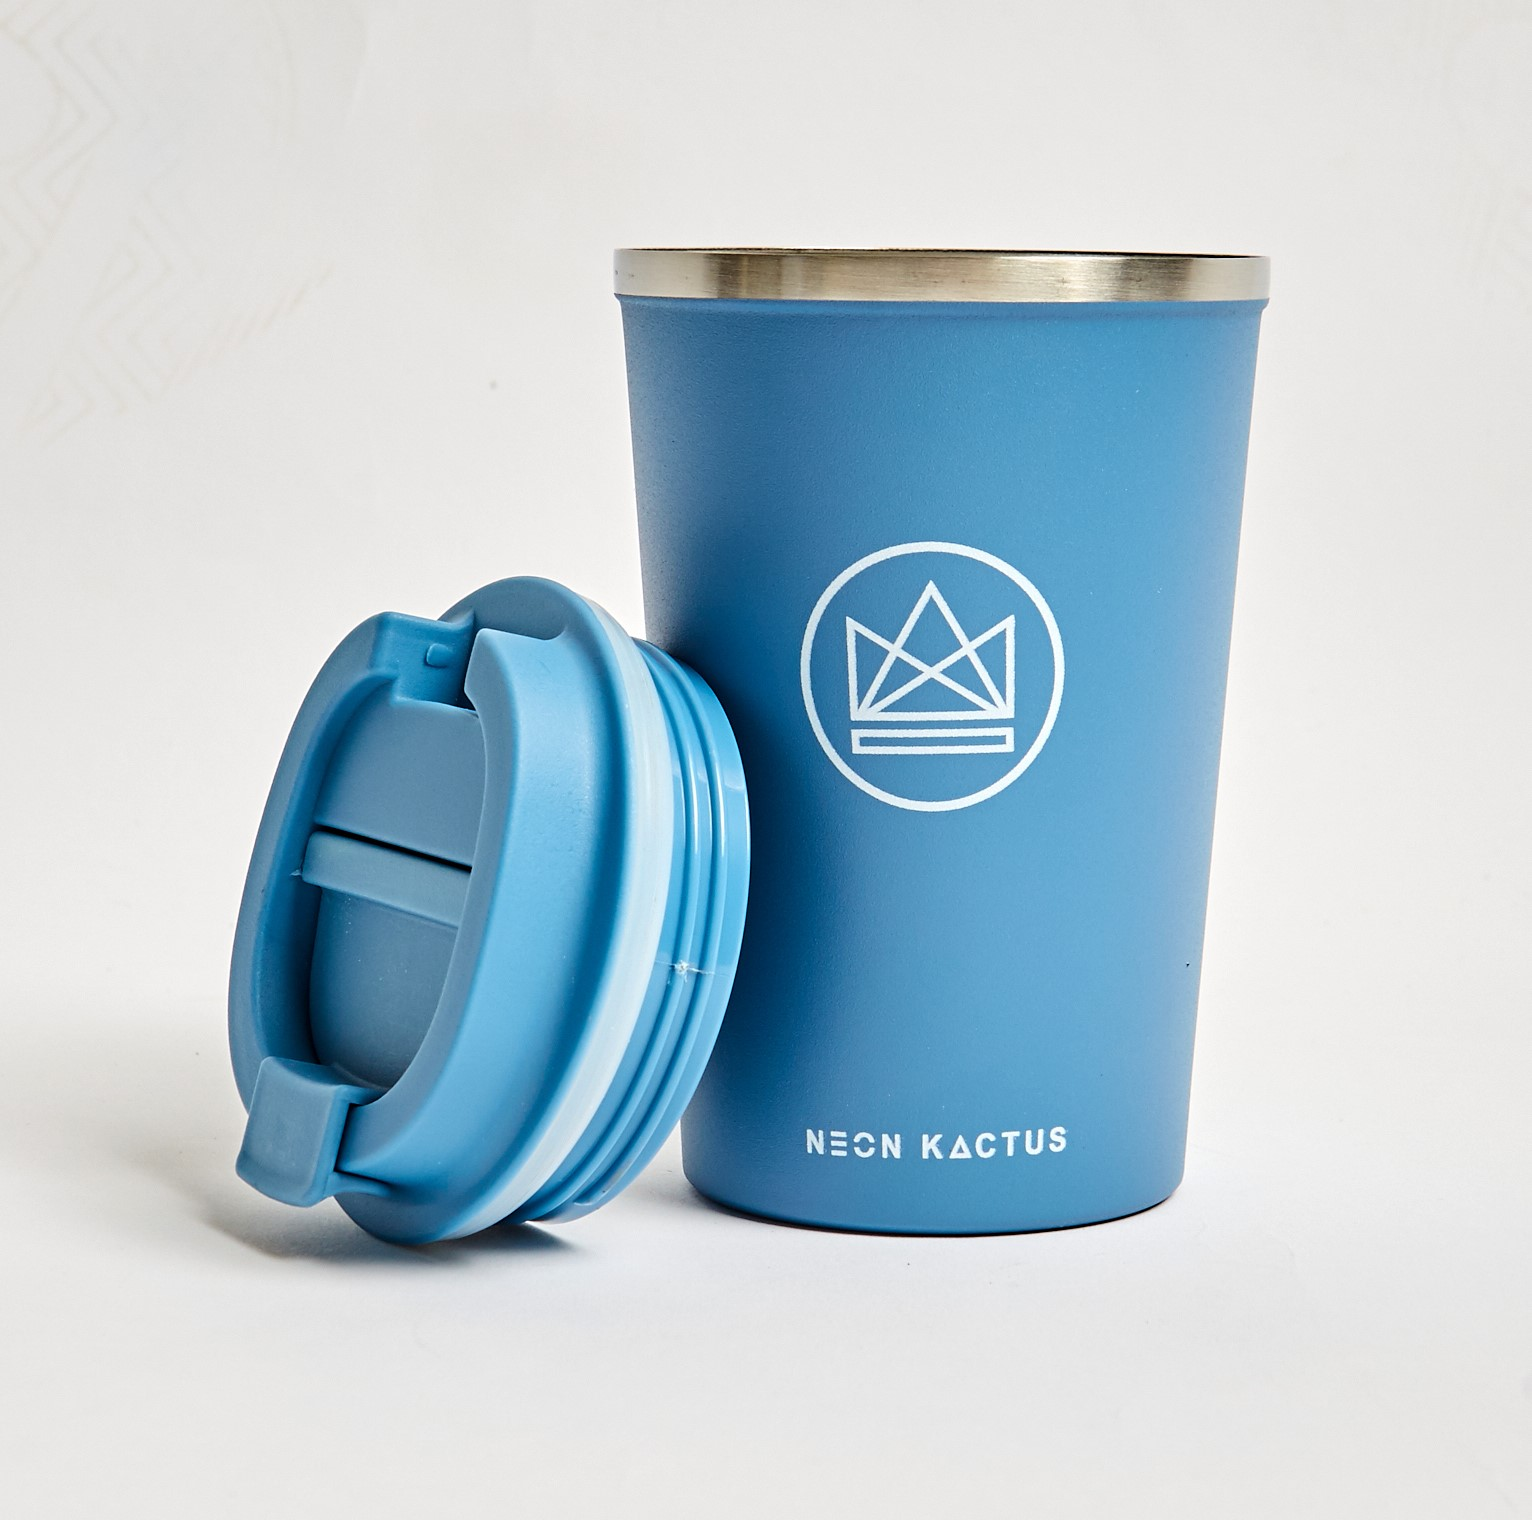 Neon Kactus -  Blue/Grey  Stainless Steel Coffee Cup